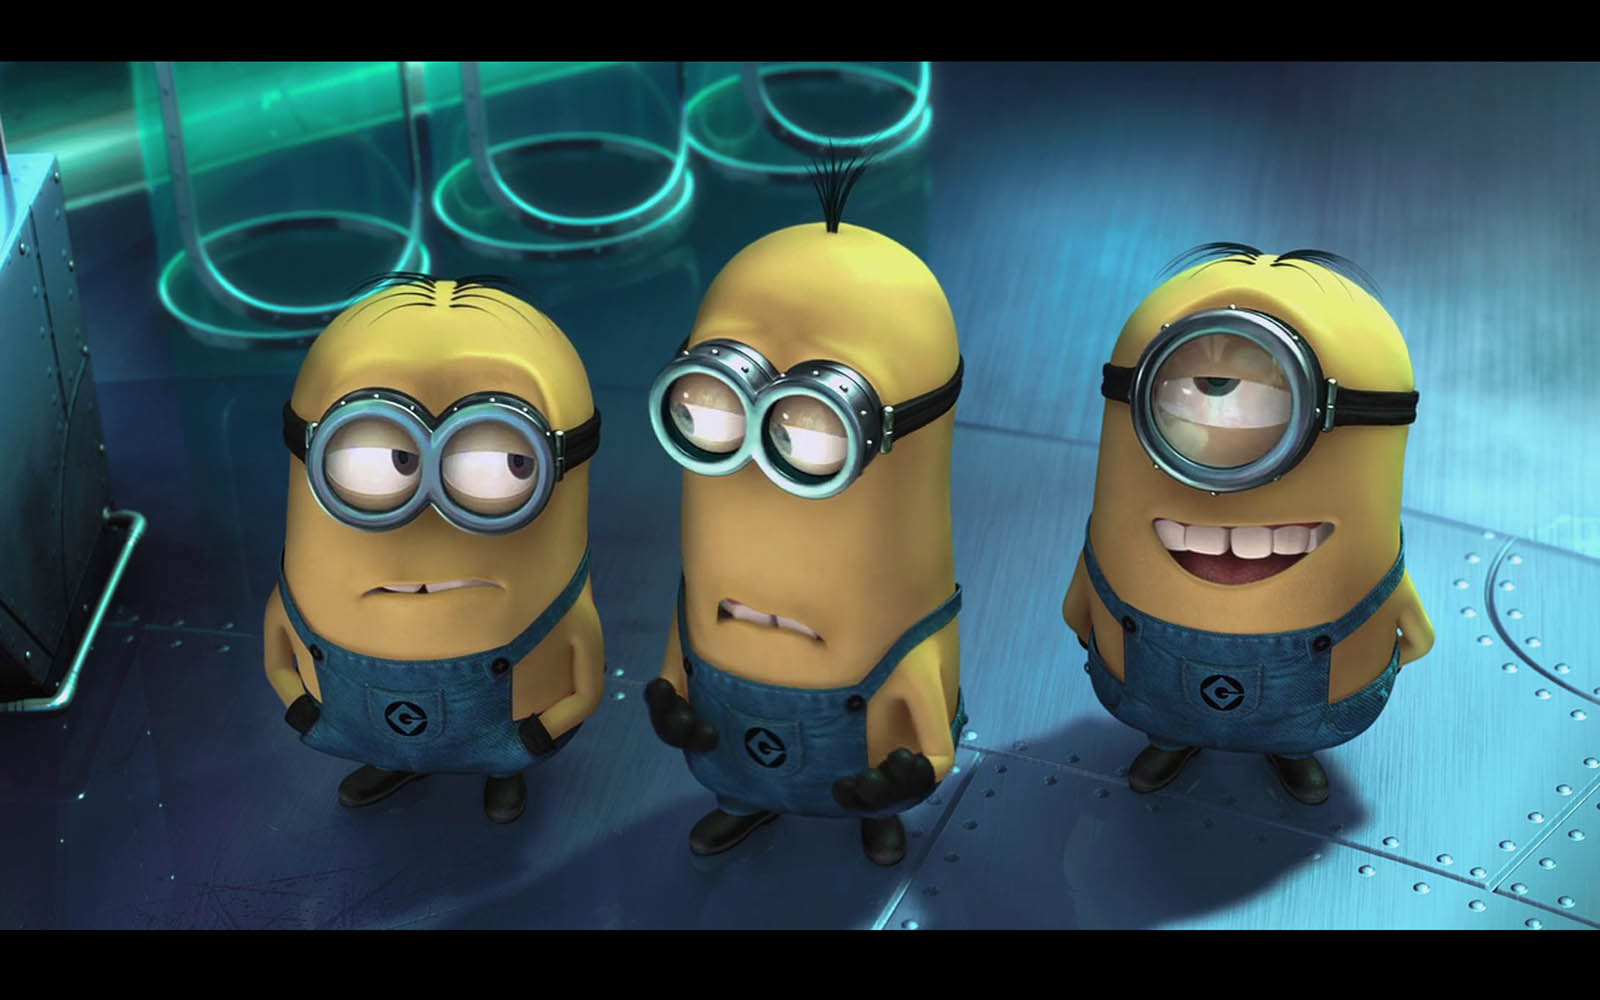 despicable me minions wallpapers - photo #14